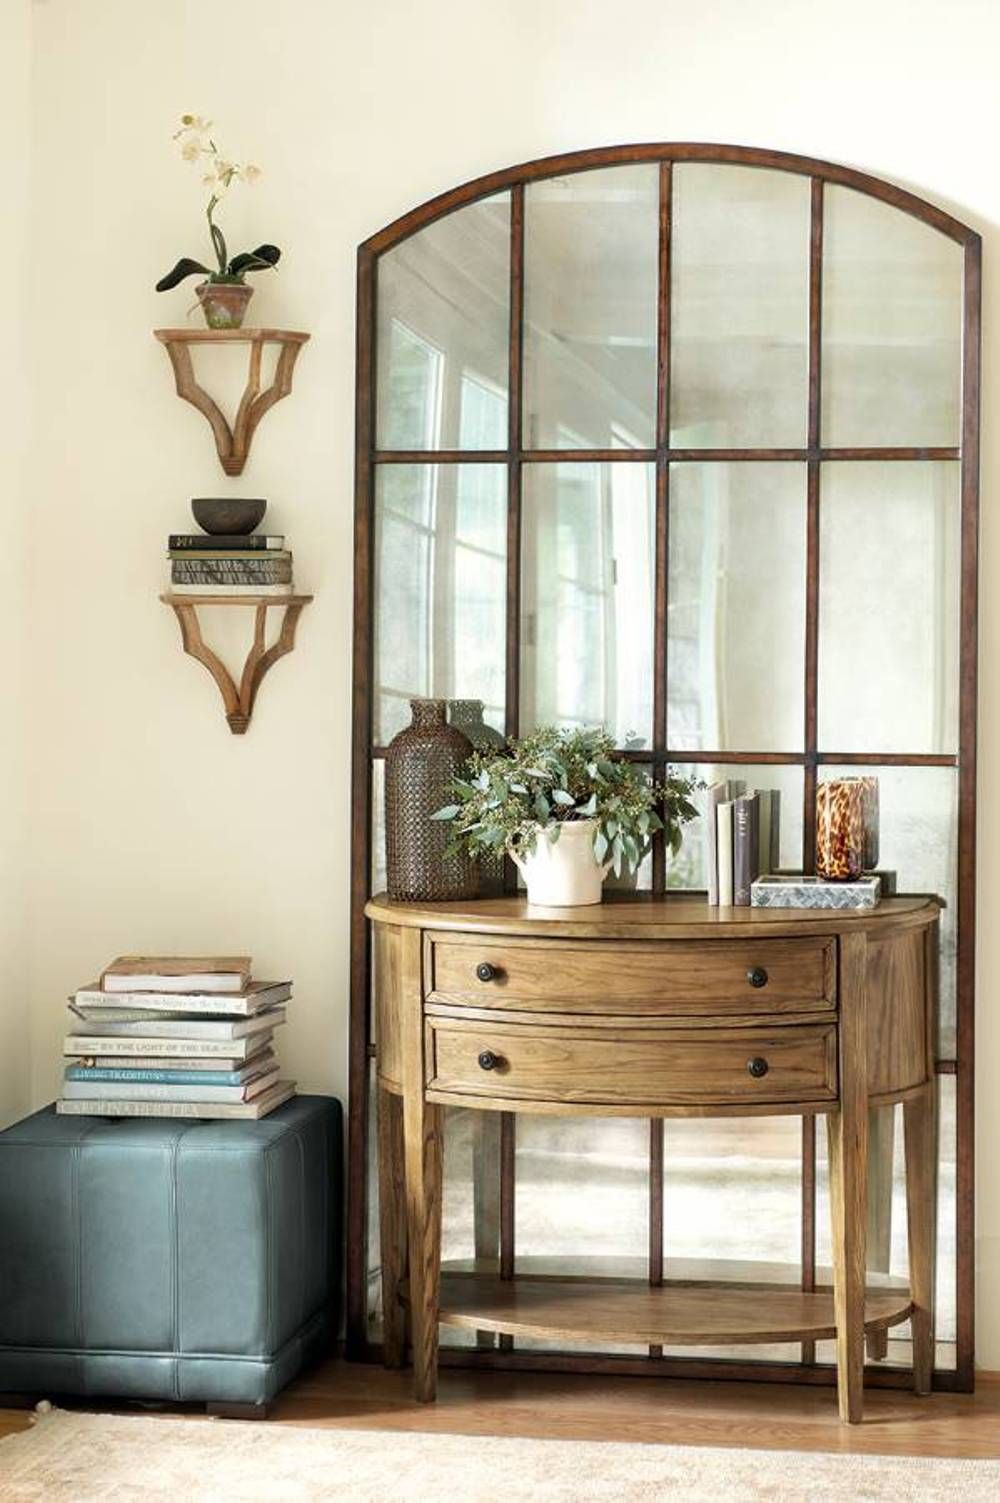 Entryway window ideas  furniture  console table with drawers  console table with drawers